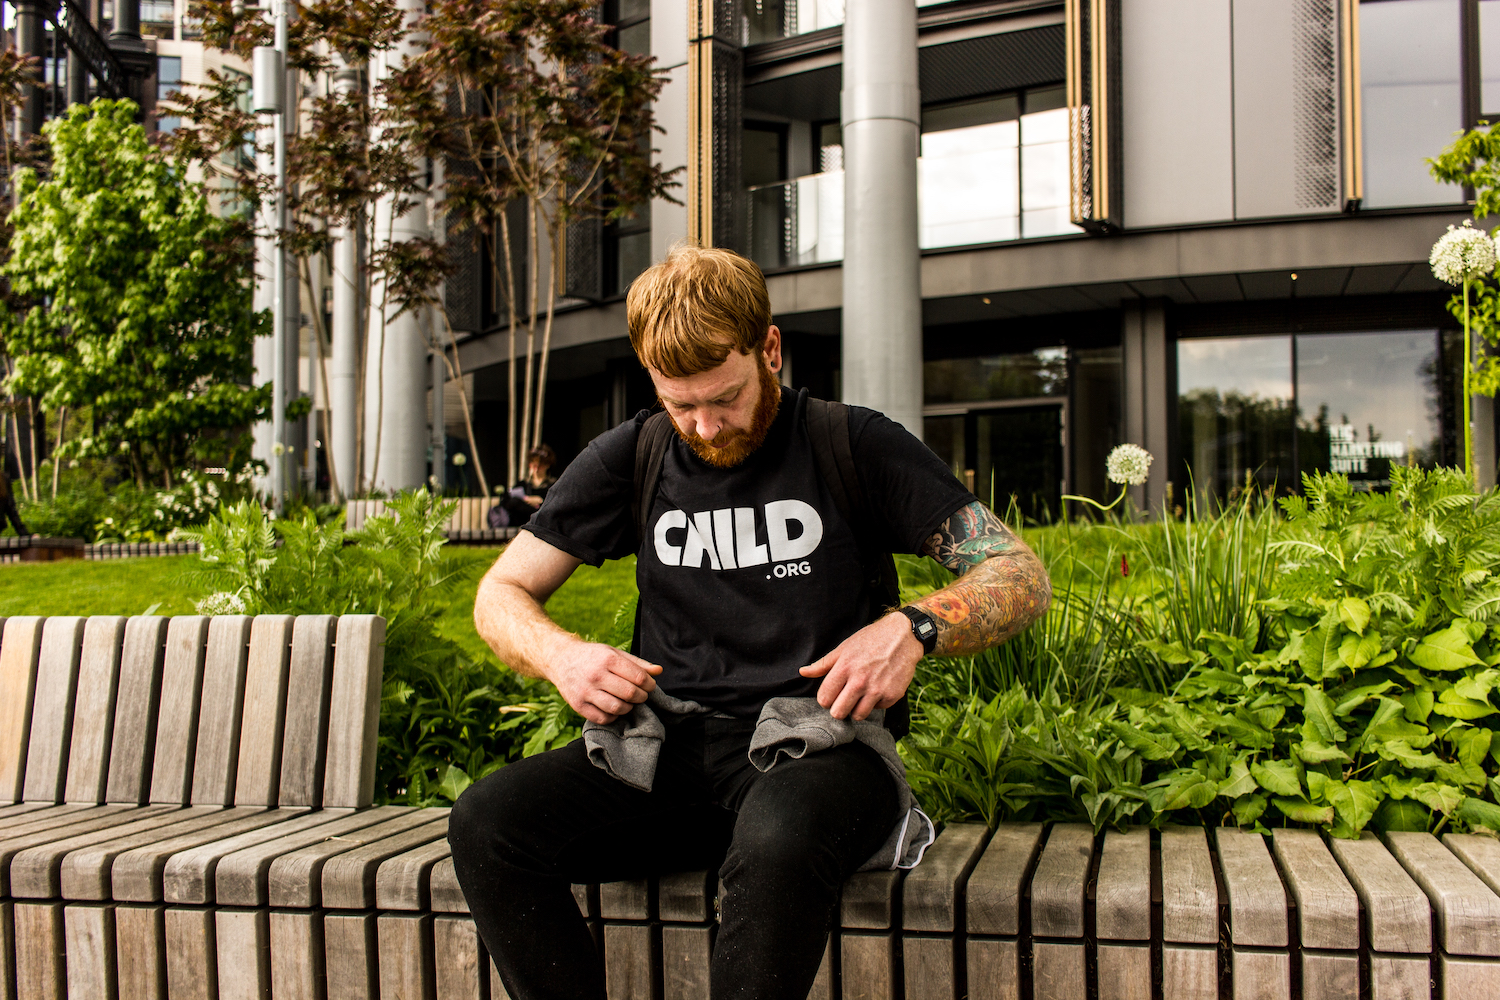 Professional Photography White Man With Beard Showing Black Child.org T-Shirt Sitting On Bench In Front Of Bushes And Metal Buildings In Camden London